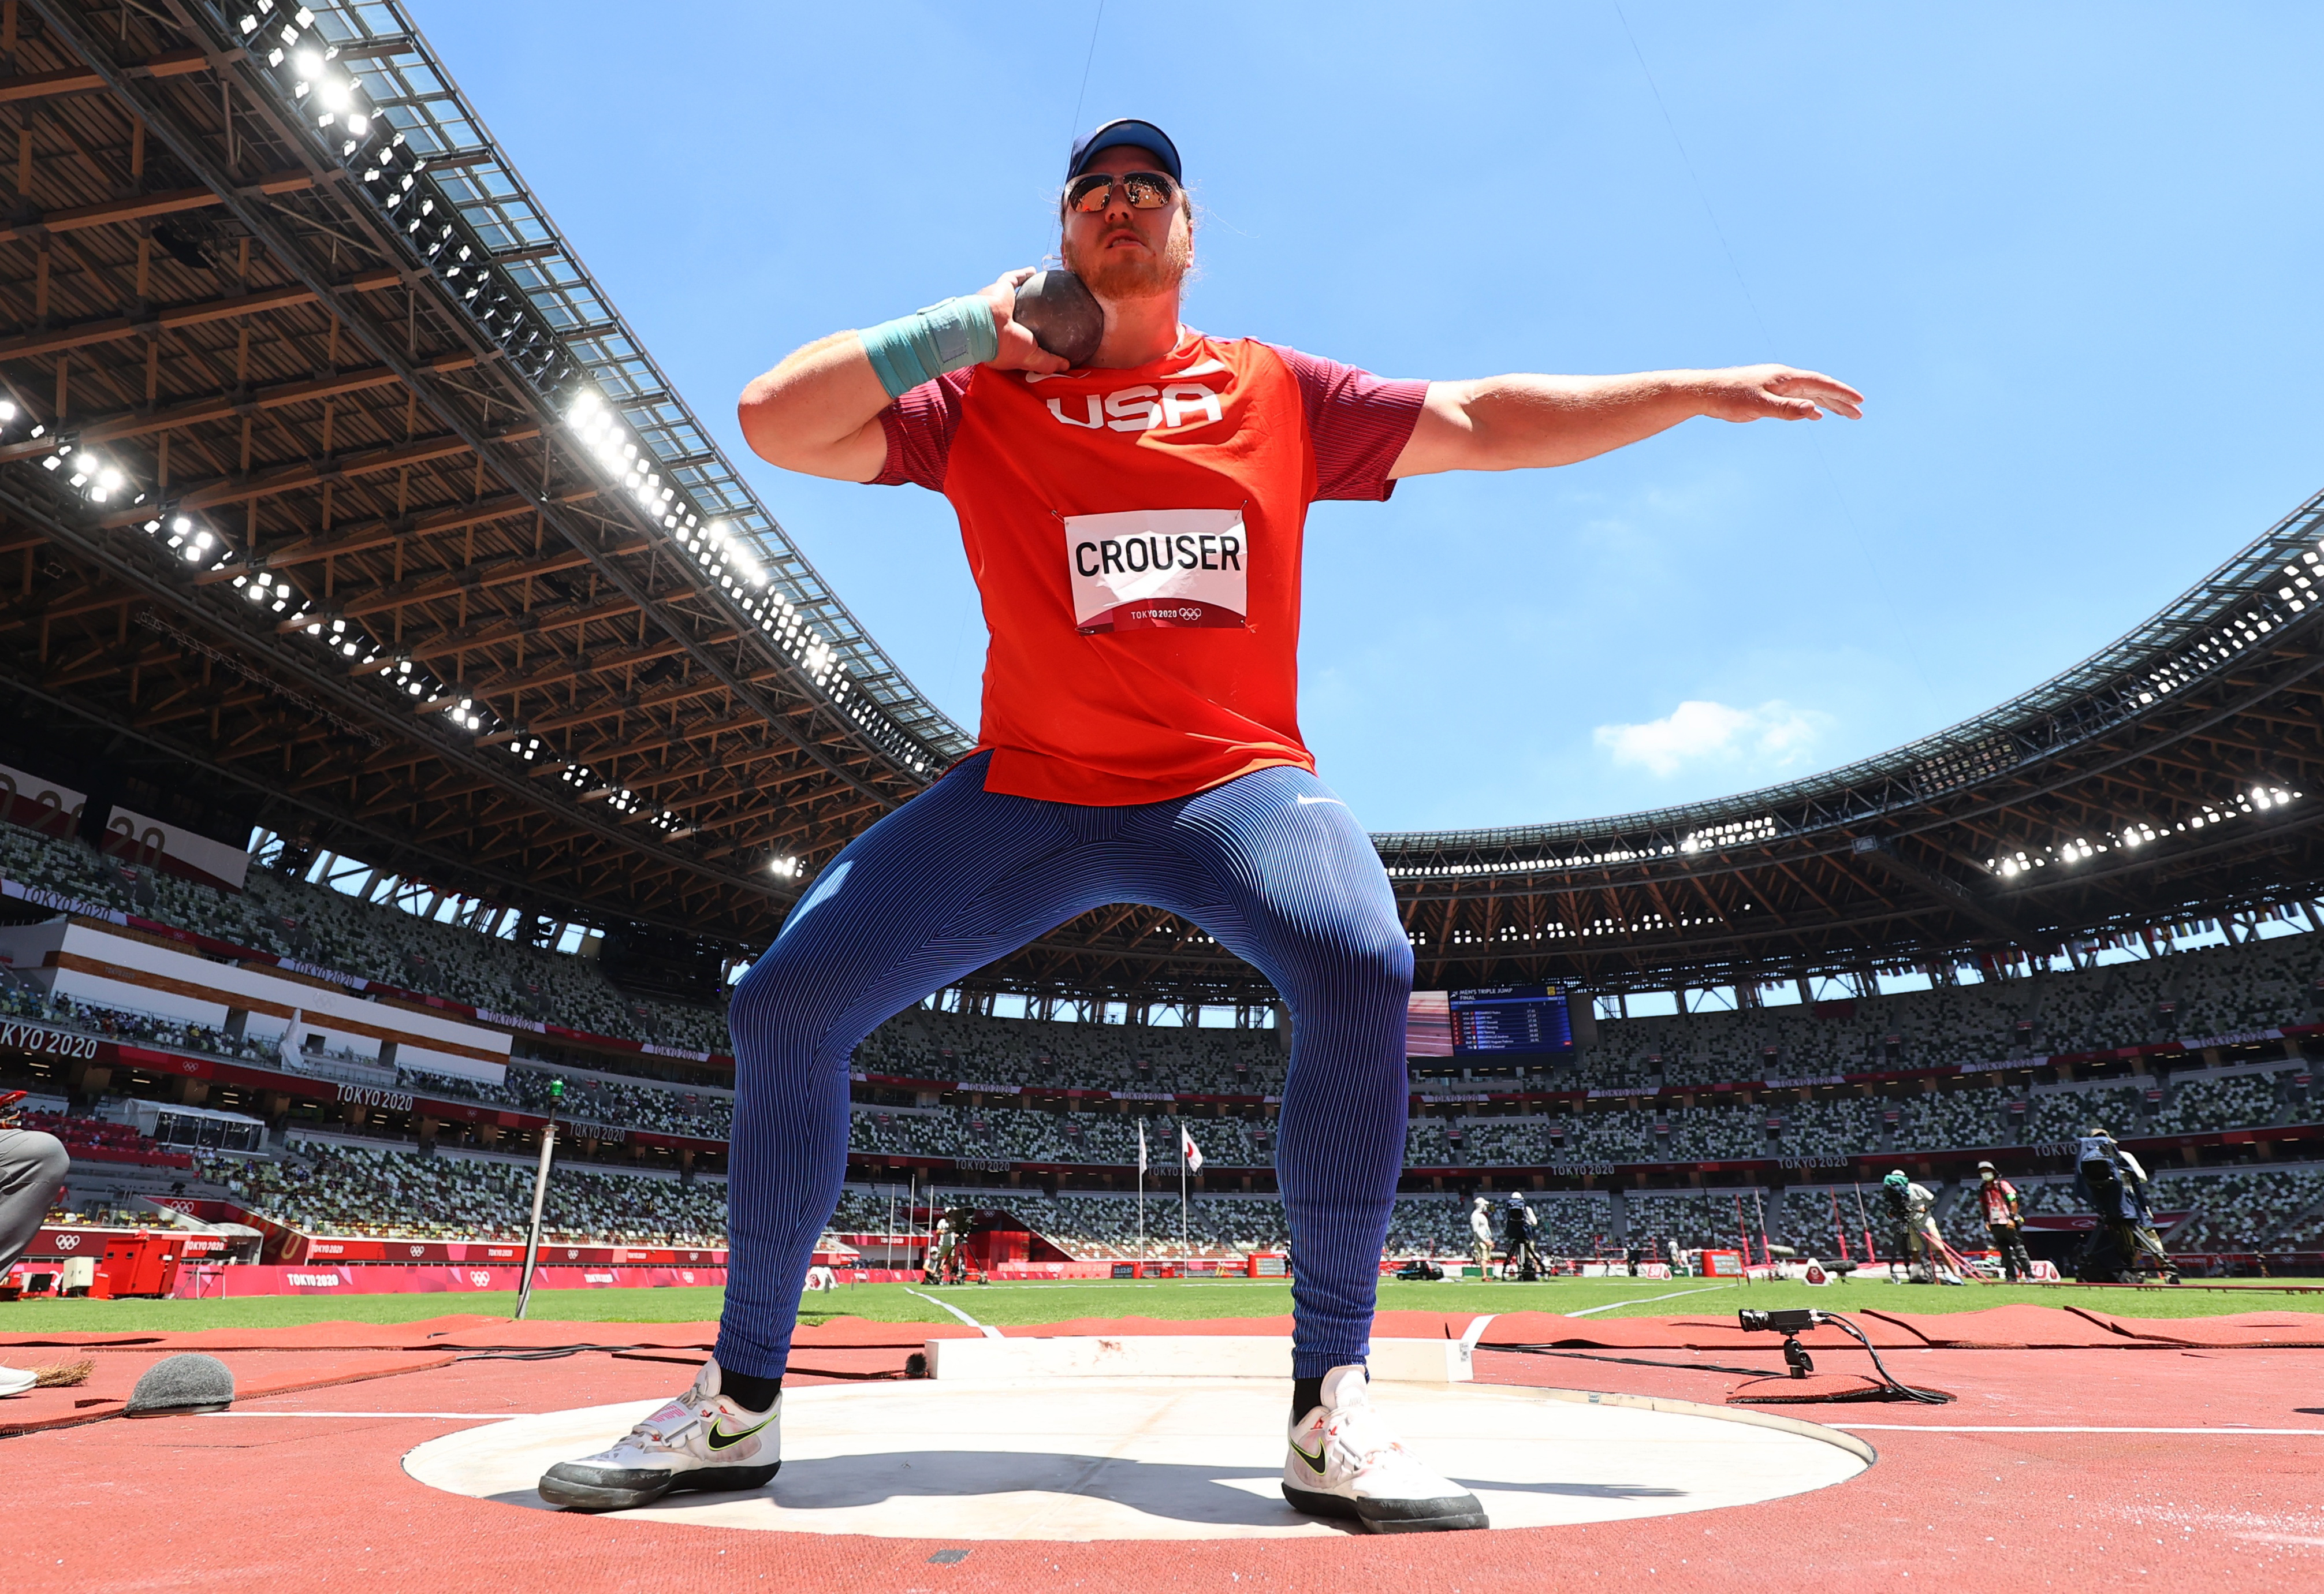 Tokyo 2020 Olympics - Athletics - Men's Shot Put - Final - Olympic Stadium, Tokyo, Japan - August 5, 2021. Ryan Crouser of the United States in action REUTERS/Kai Pfaffenbach